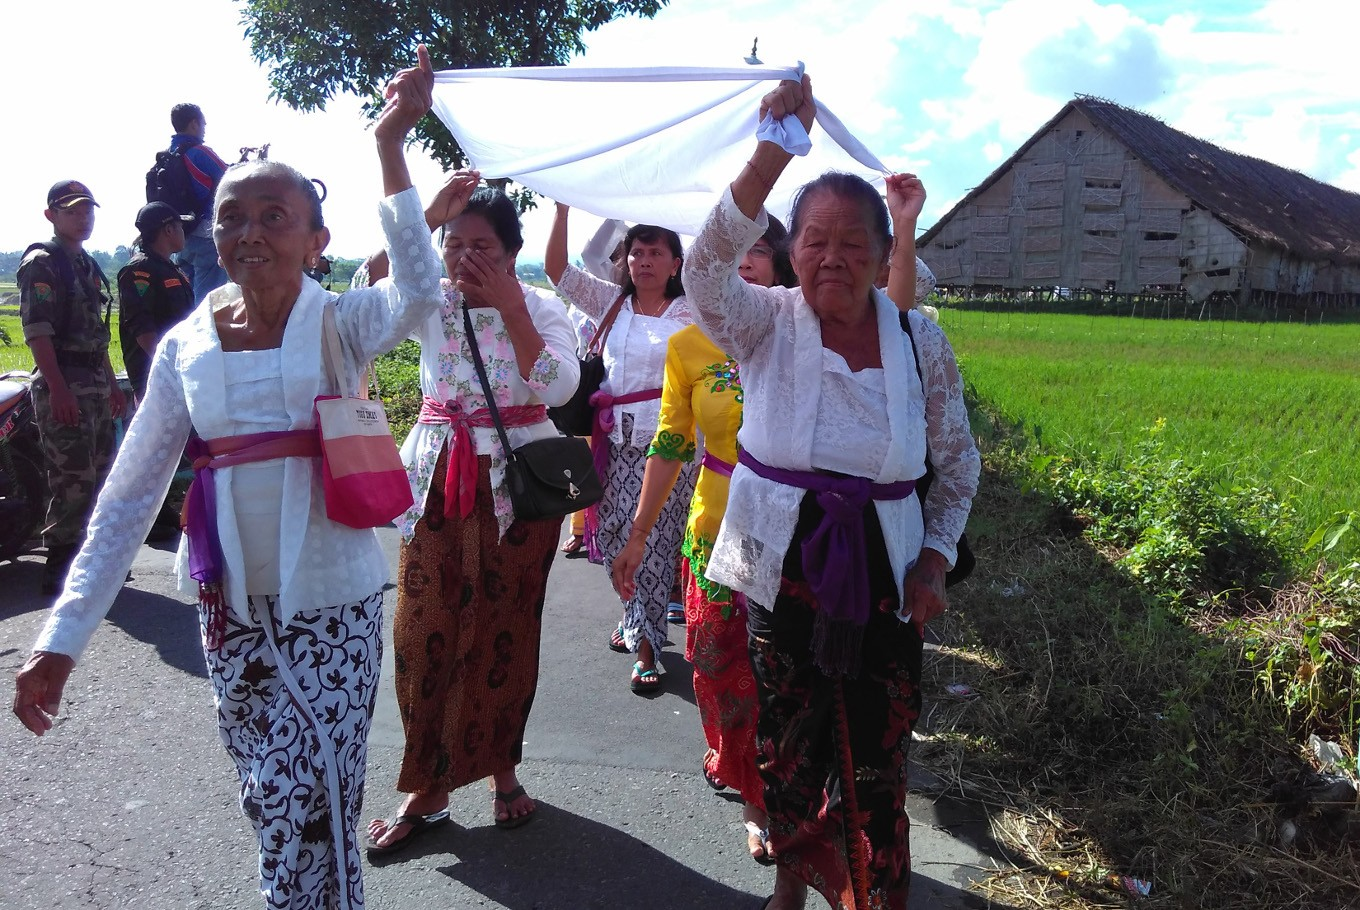 Some of the participants of Melasti walk to reach Umbul Geneng in Klaten, Central Java, on Sunday, March 11.